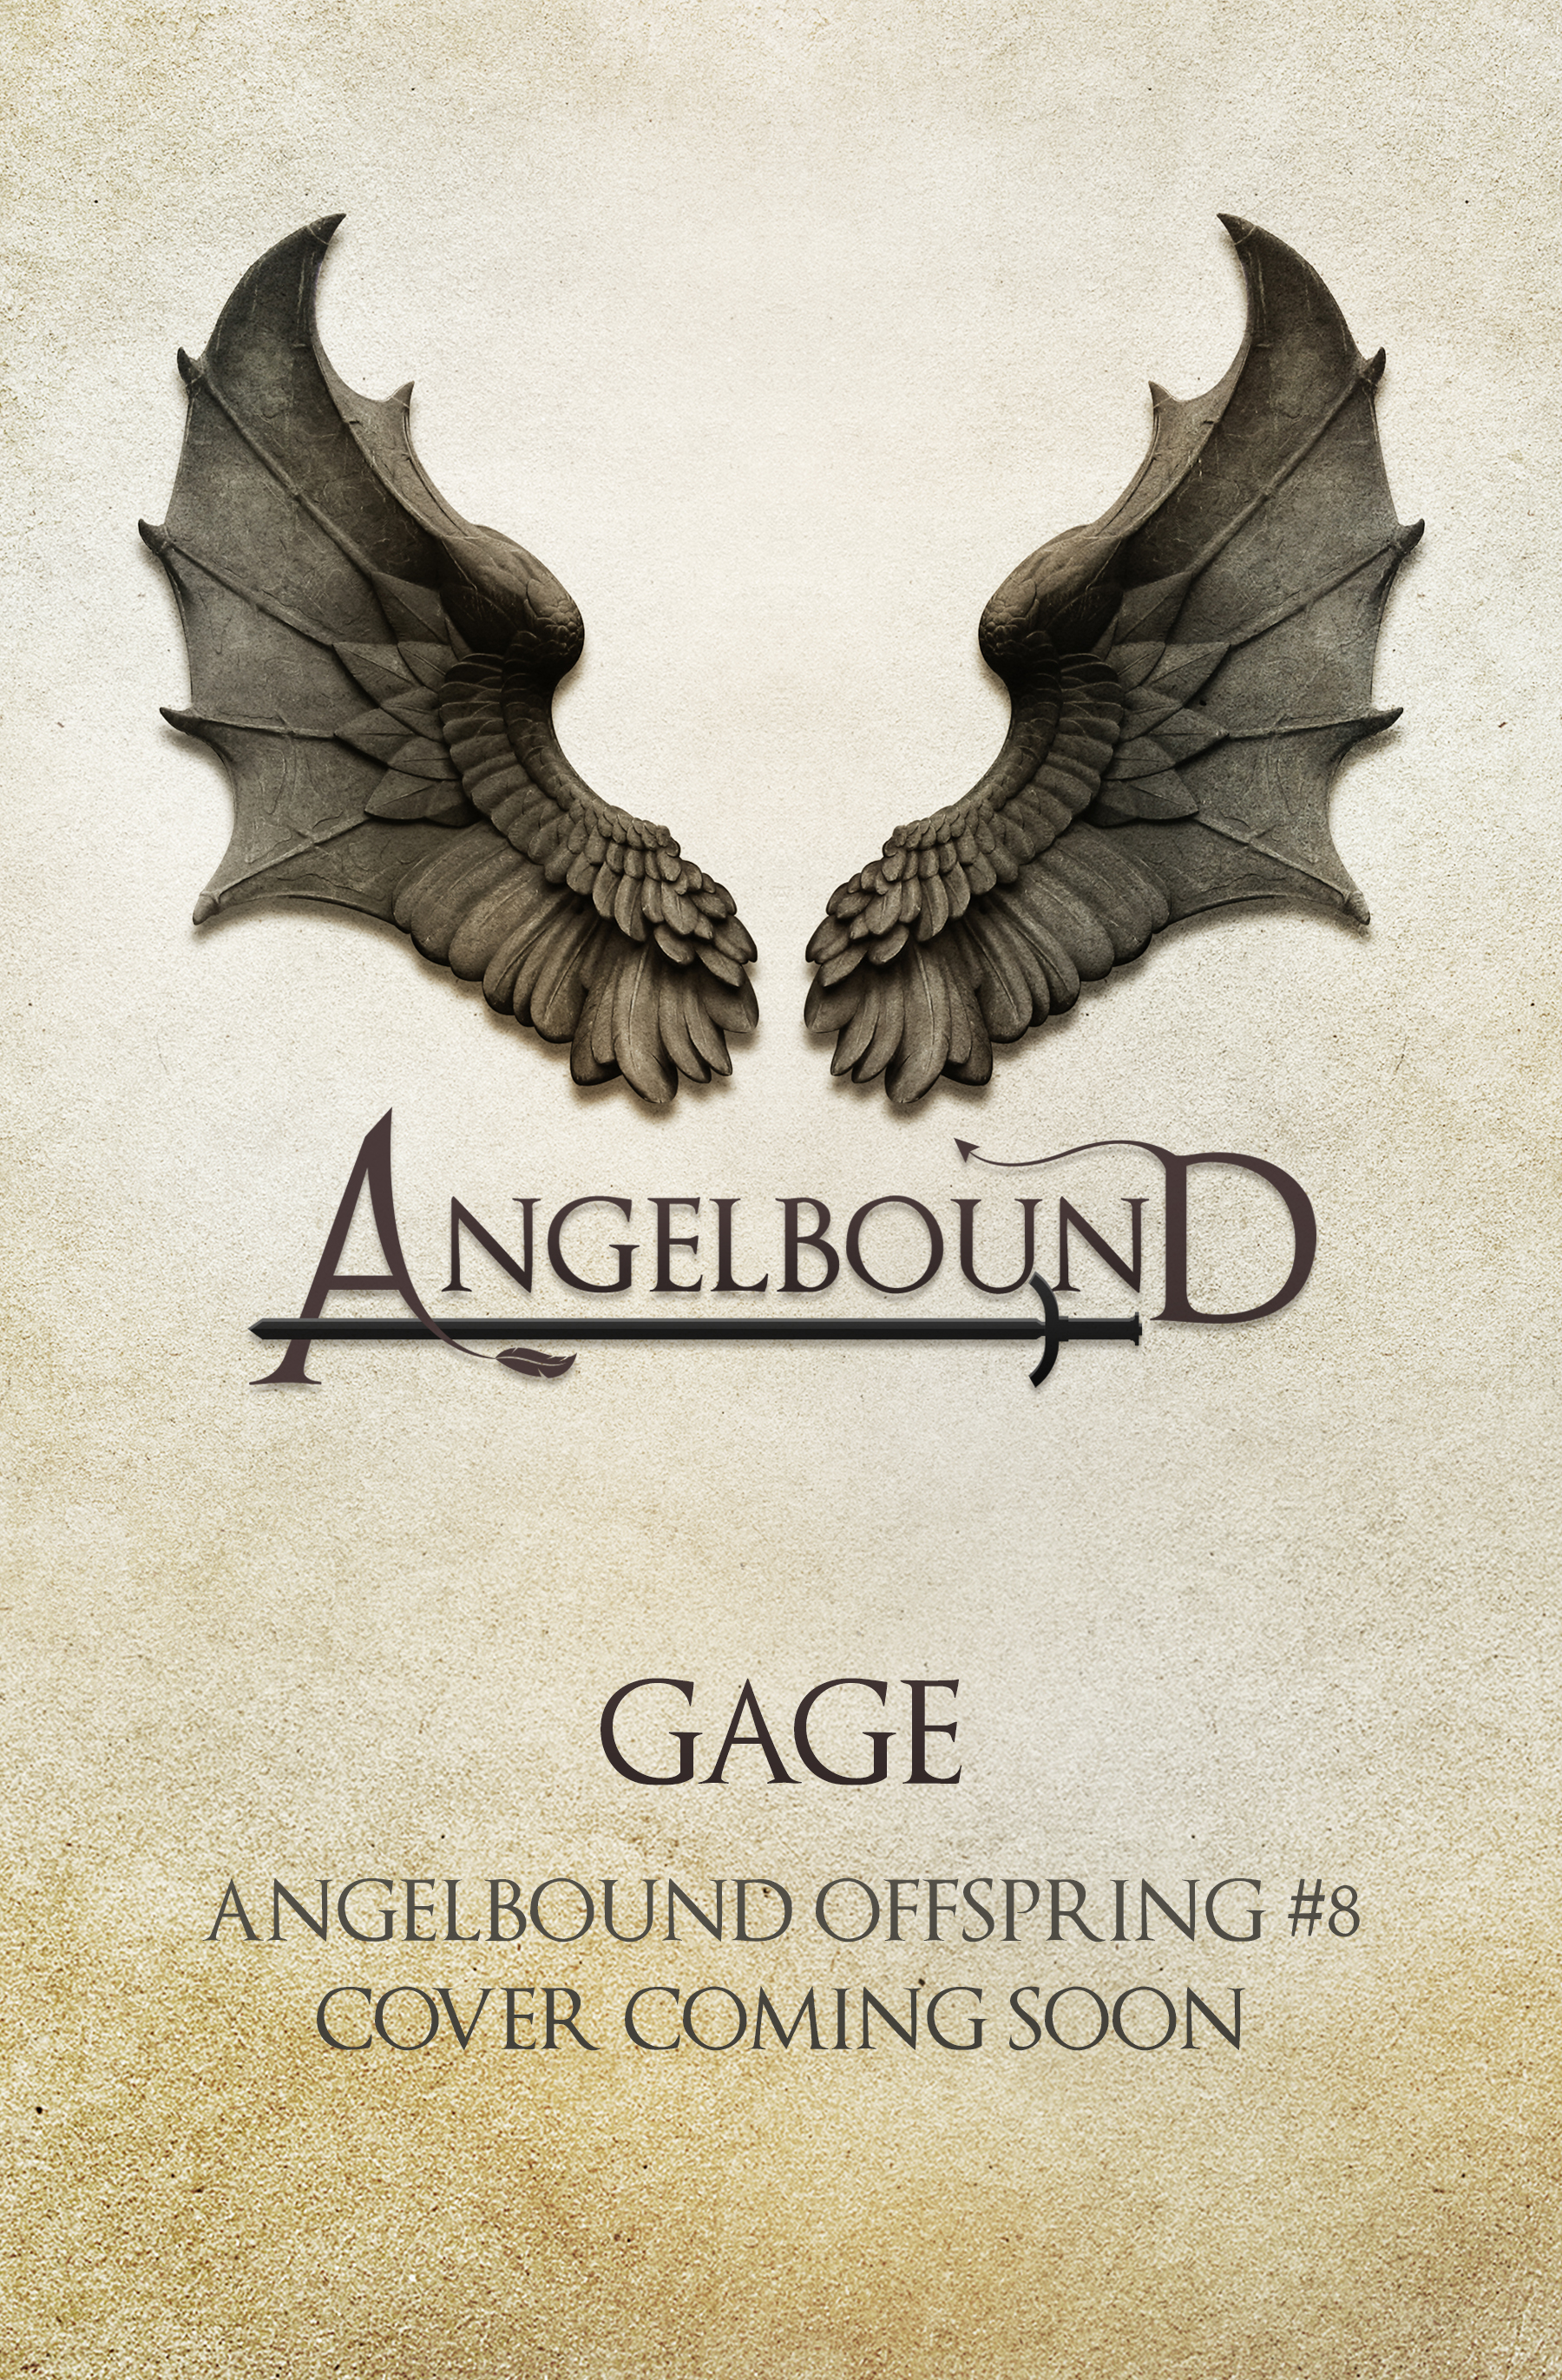 Gage (Angelbound Offspring #8)